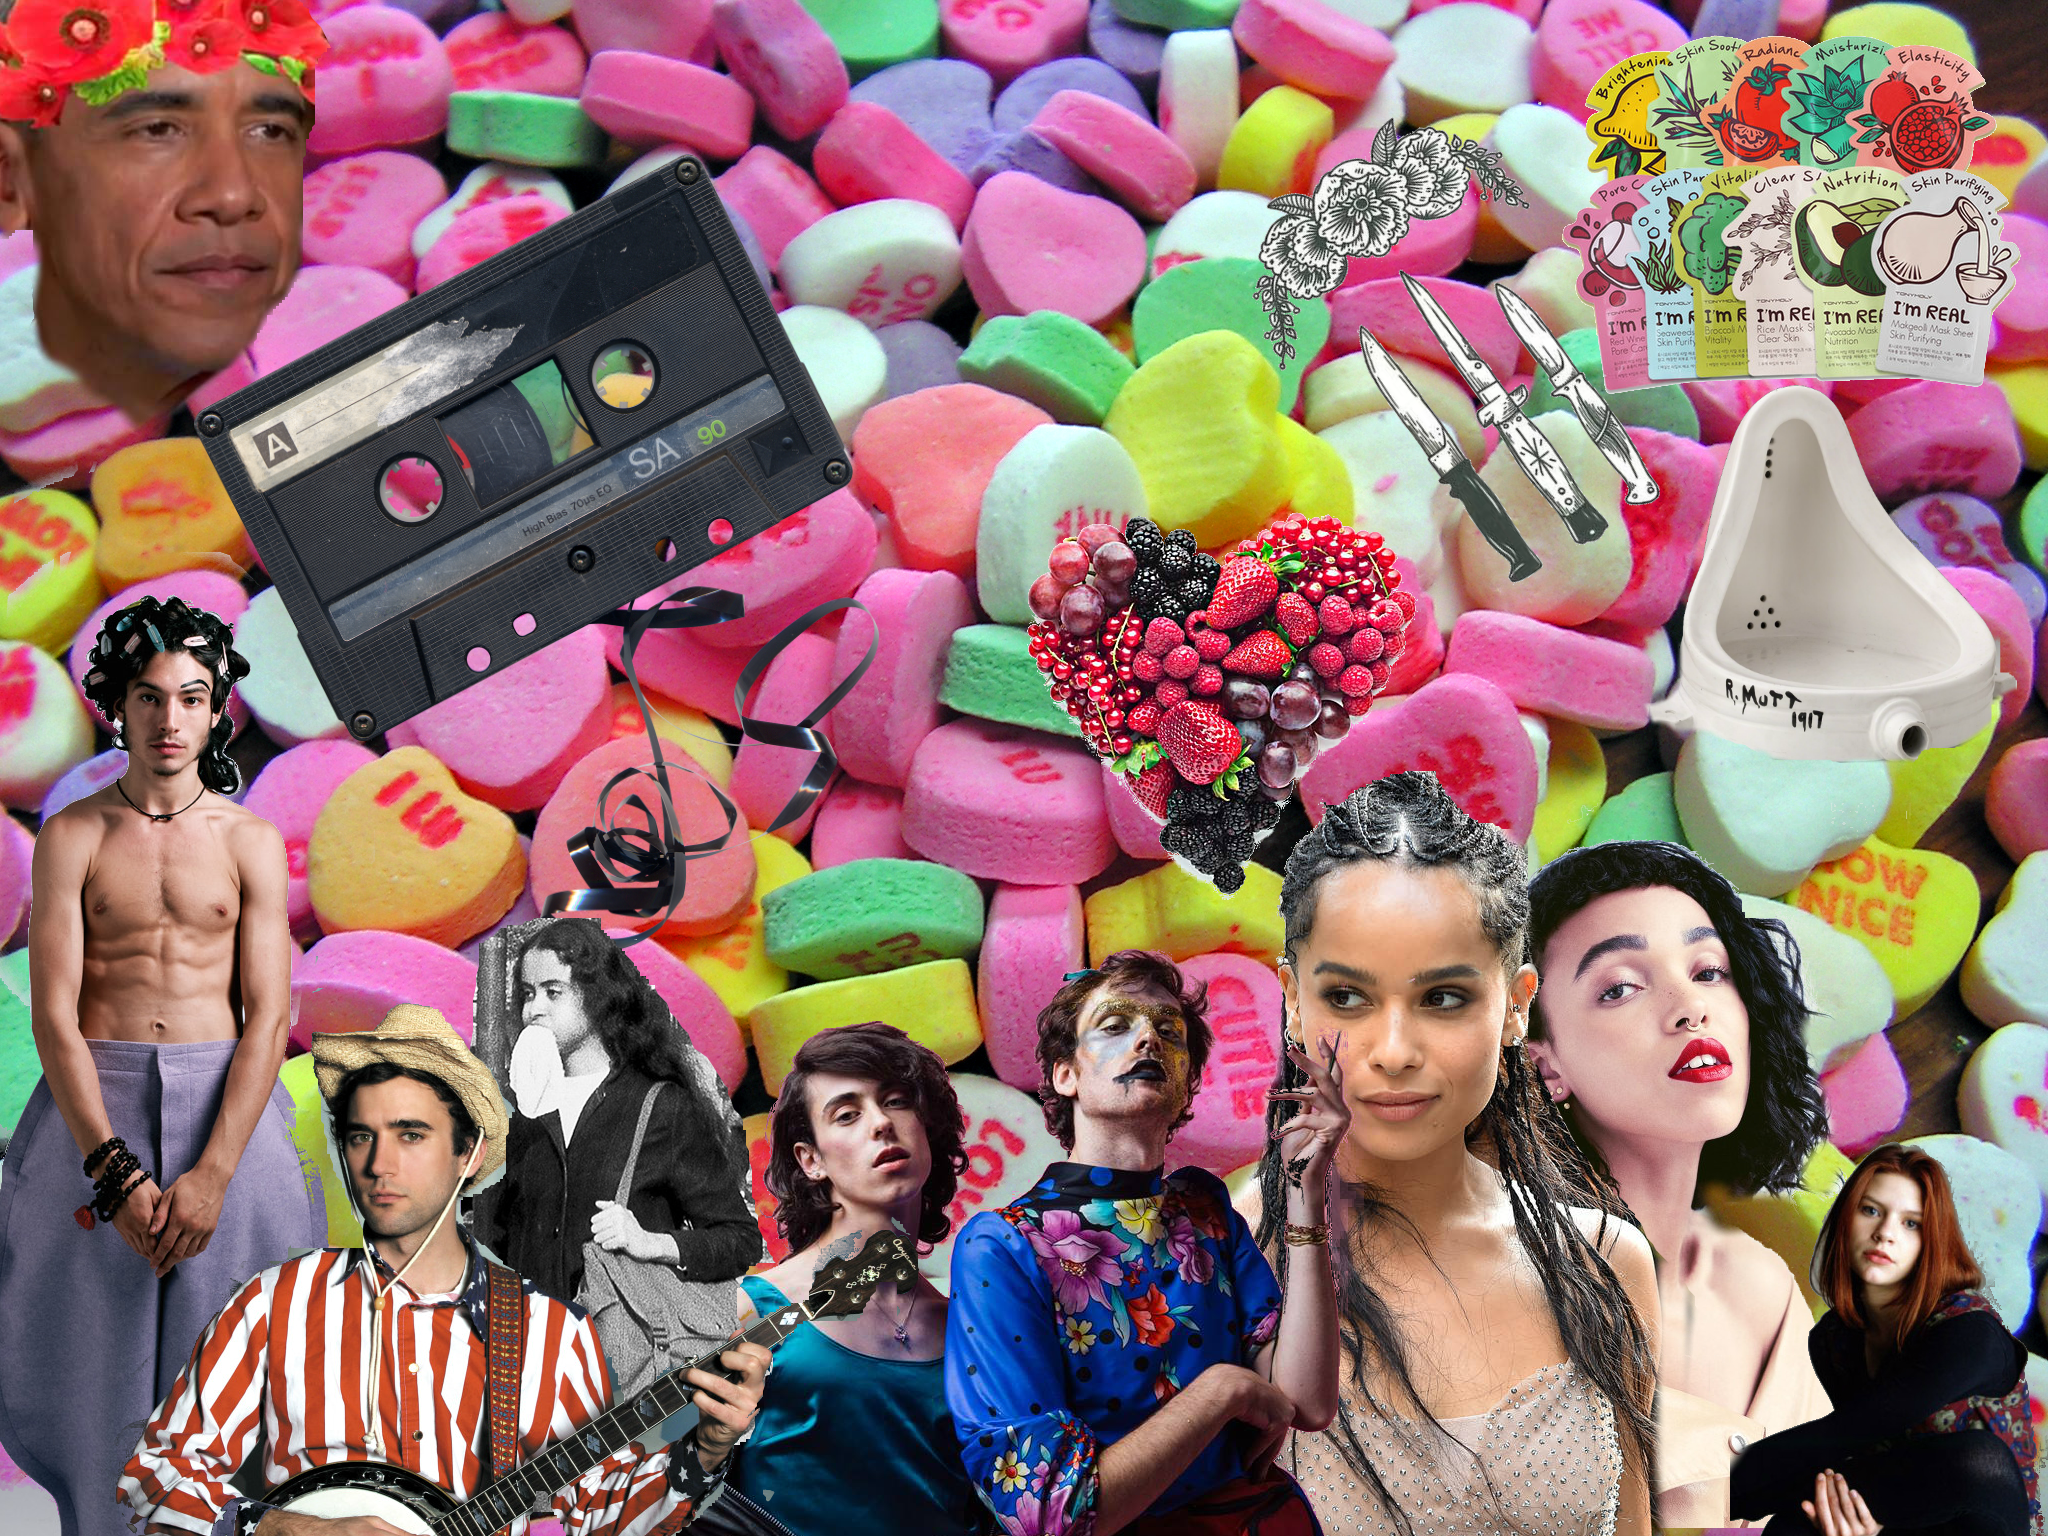 collage of: hard candies, ezra miller, barack obama, pwr bttm, adrian piper, zoe kravitz, fka twigs, claire danes, duchamp's fountain, tape cassette, mixed berries in the shape of a heart, assorted face masks, and tattoo sketch of various blades and flowers.